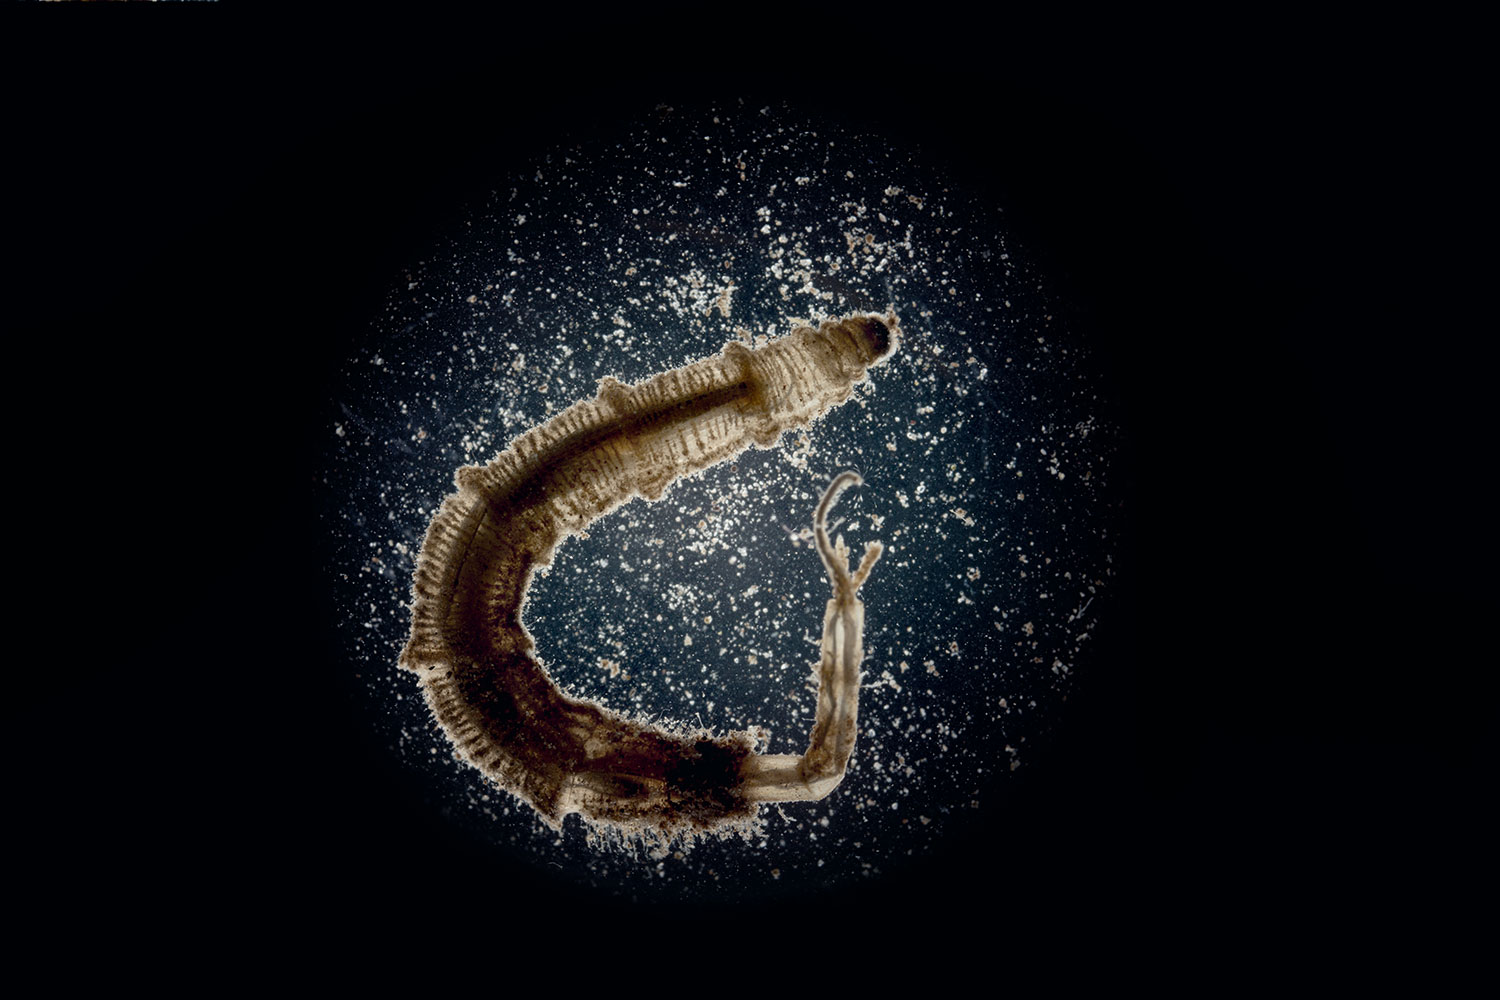 space_worm_two.jpg